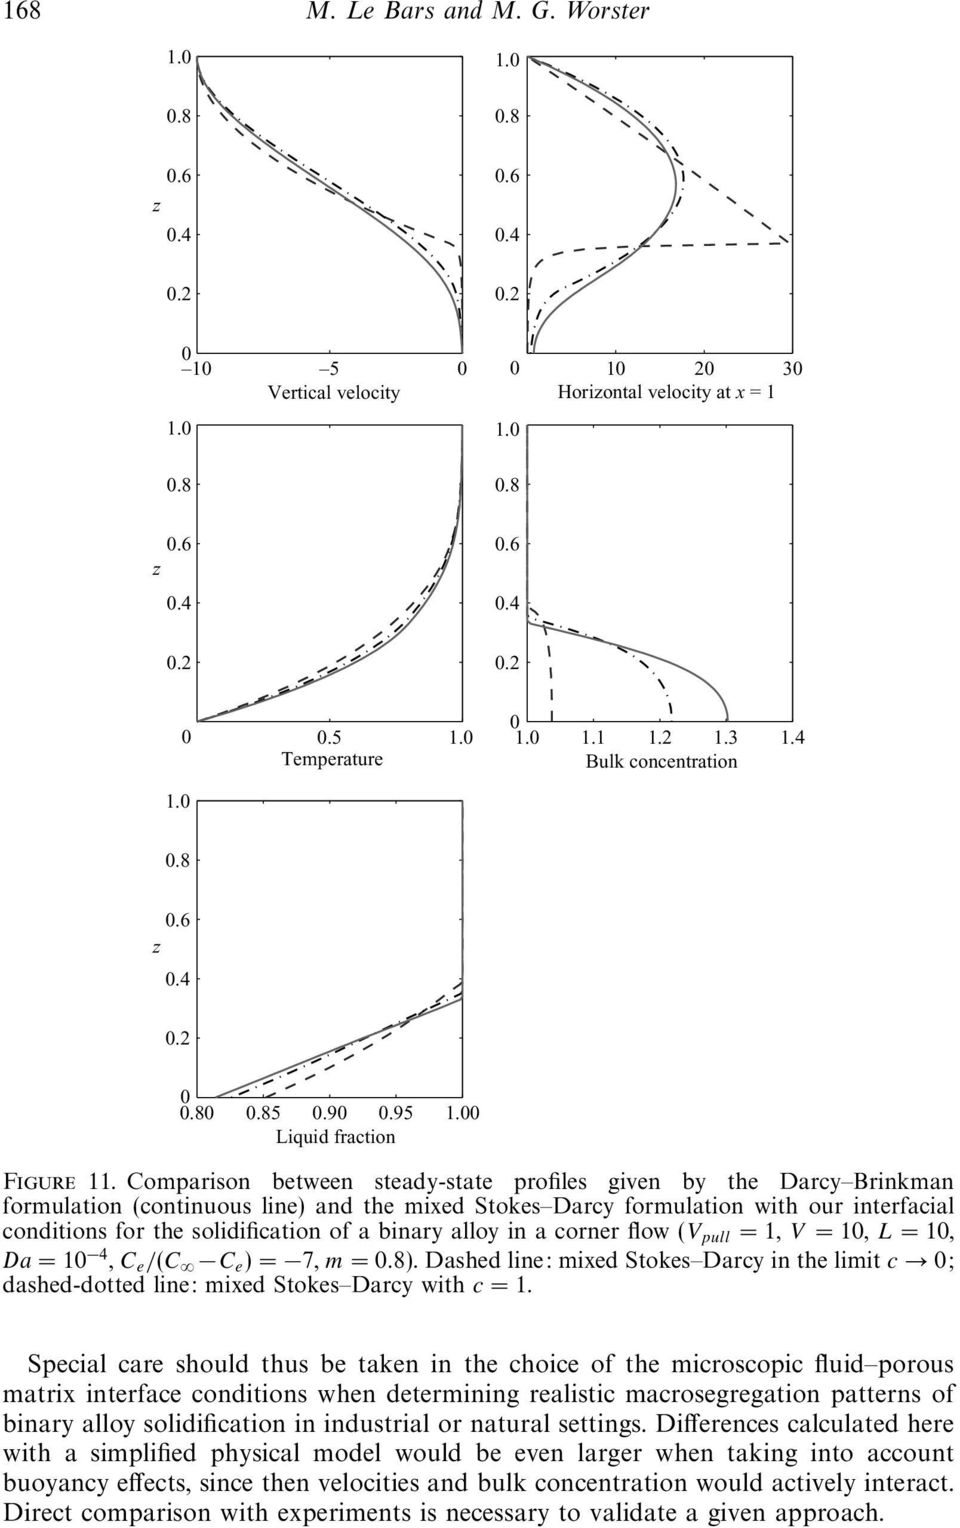 Comparison between steady-state profiles given by the Darcy Brinkman formulation (continuous line) and the mixed Stokes Darcy formulation with our interfacial conditions for the solidification of a